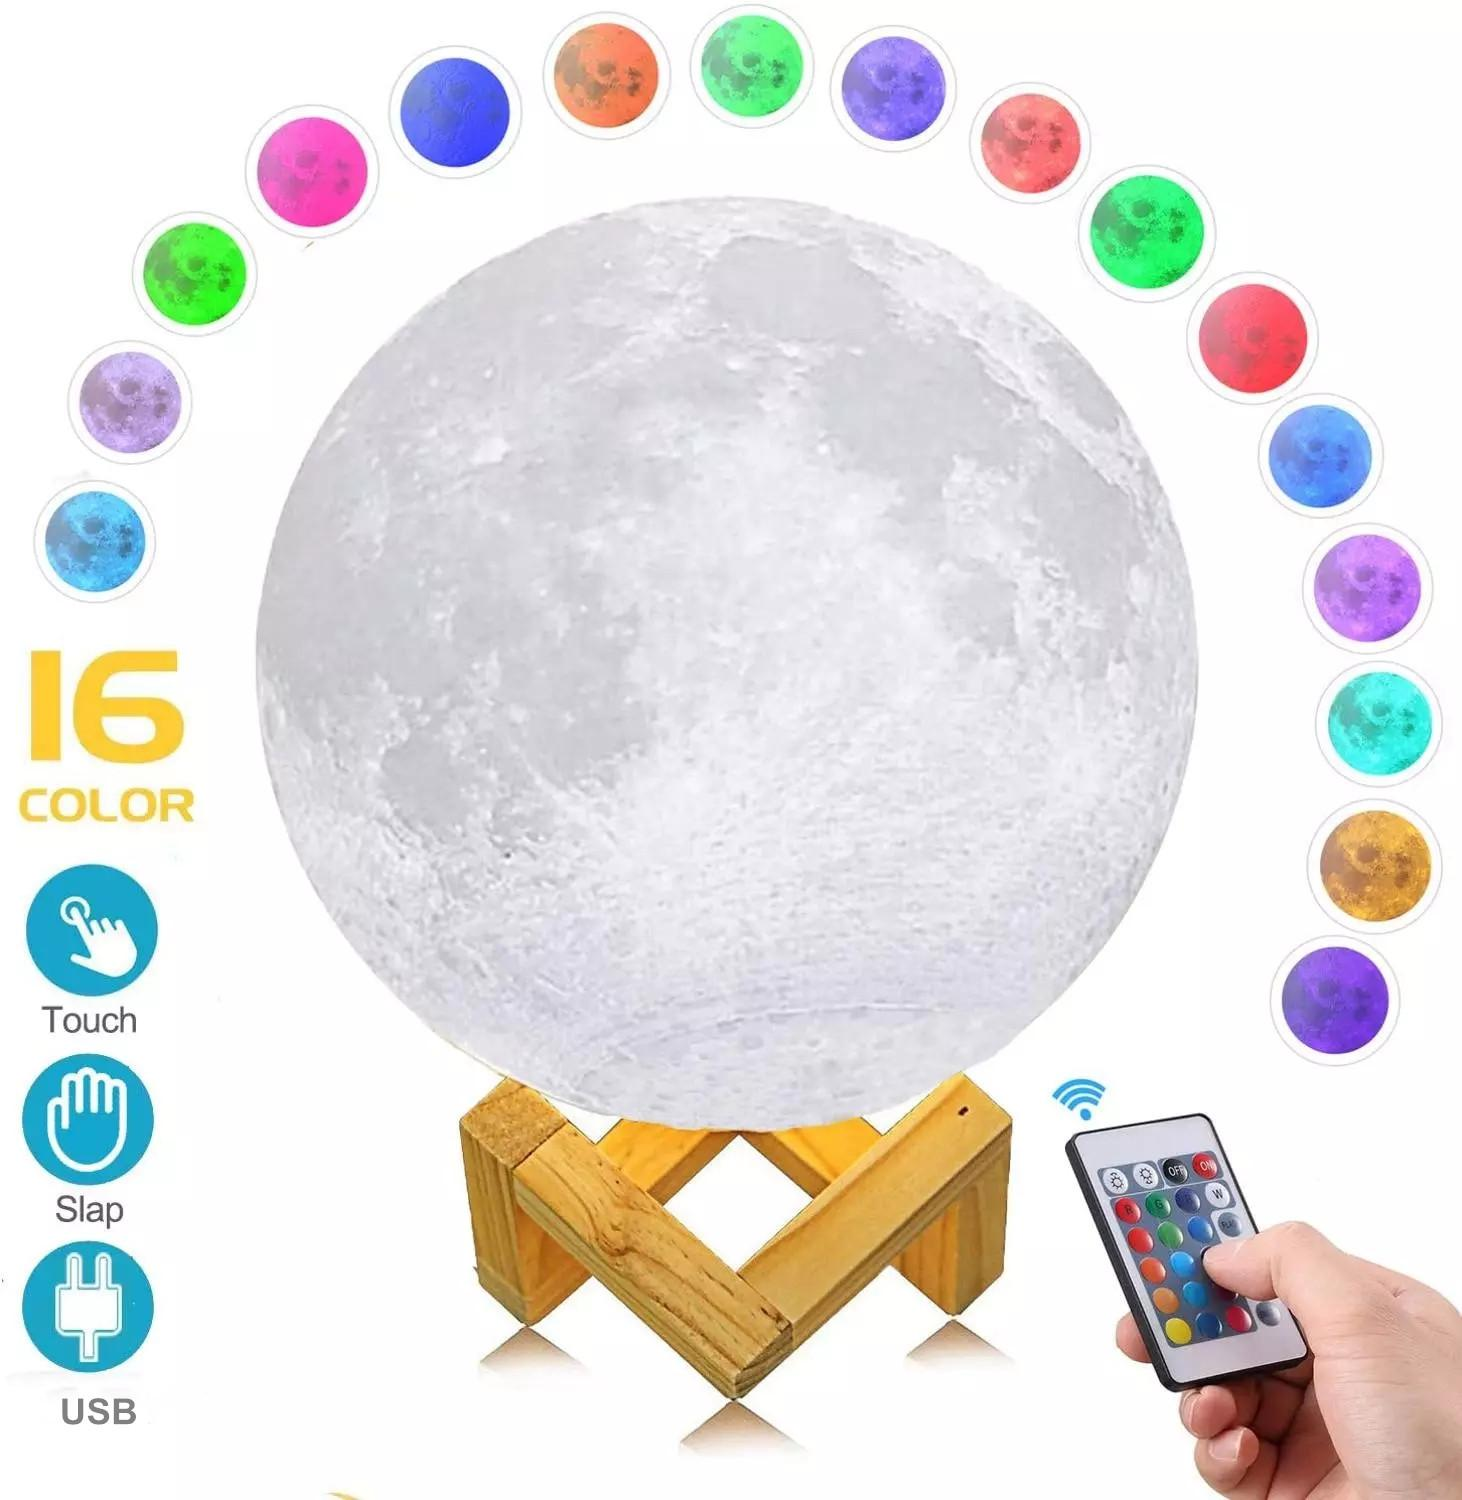 LED Night Light 3D Moon Lamp Remote Control Rechargeable 16 Color Touch Dimmable Moon Lamp Children's Lights with Wooden Stand